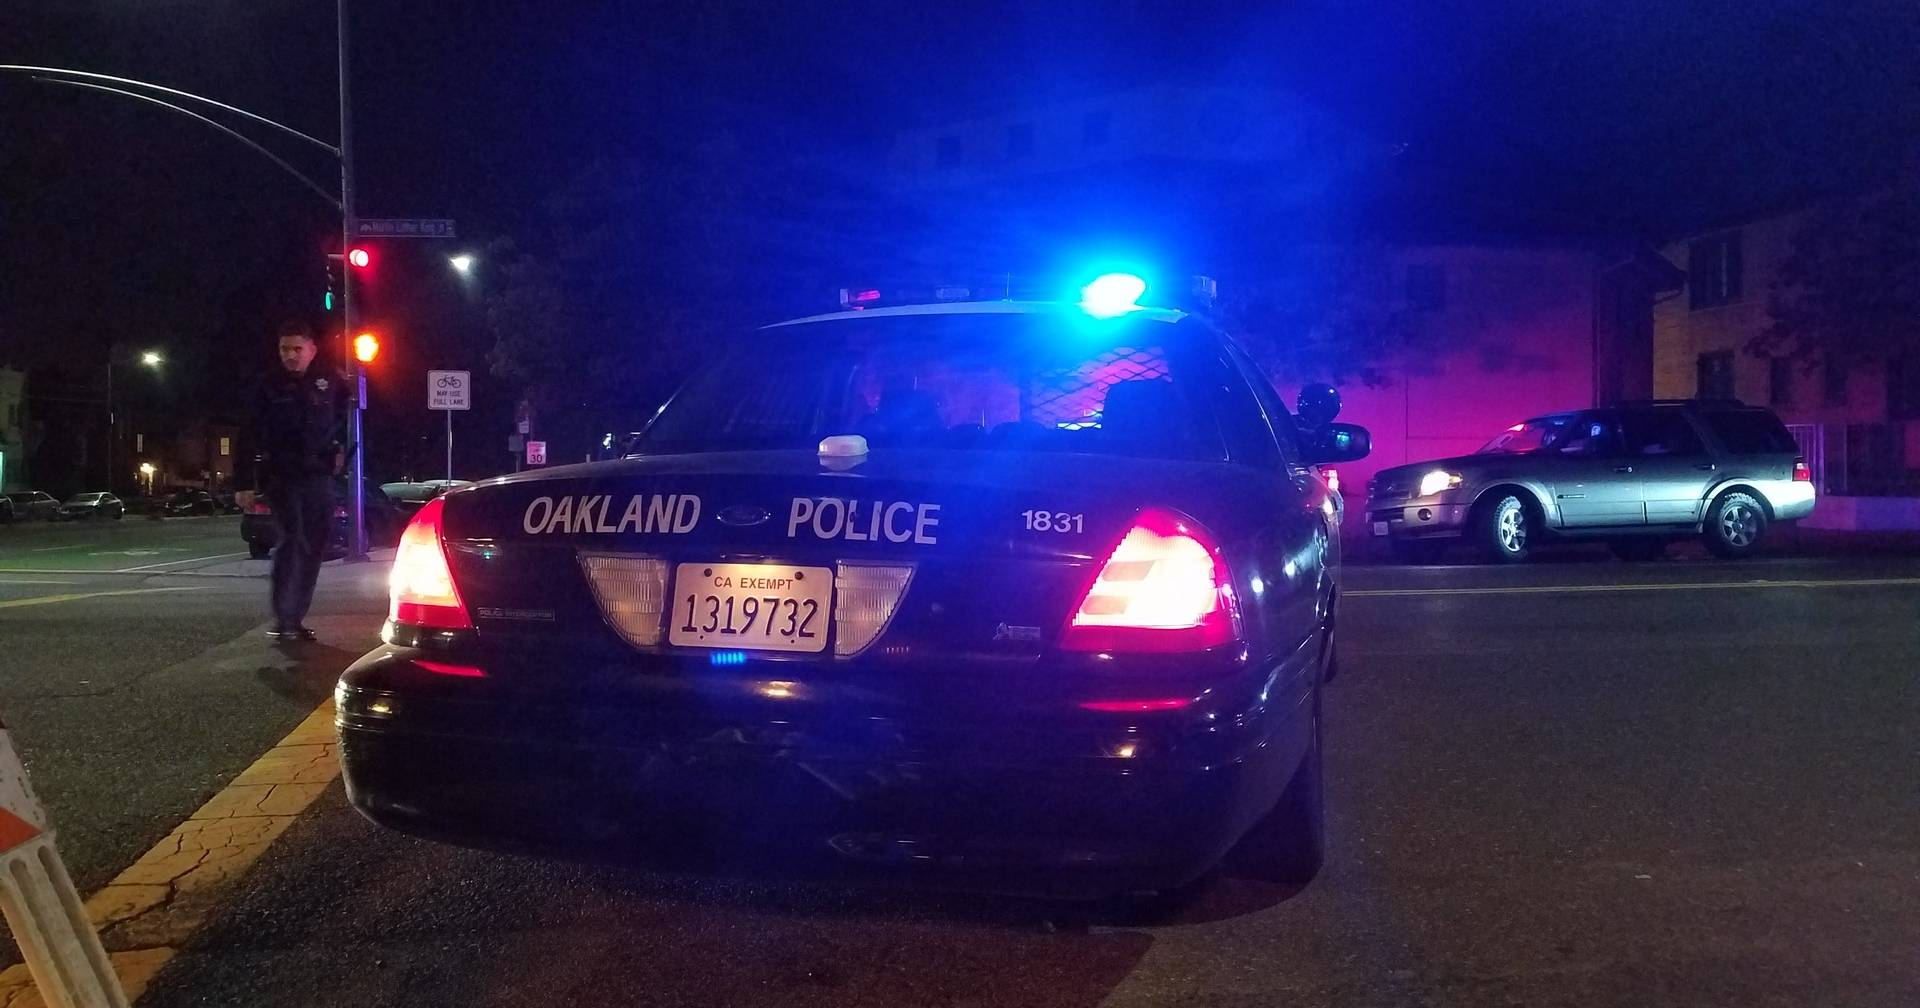 A federal judge heard arguments Monday on what a recent officer sexual exploitation case says about the Oakland Police Department's 14-year reform effort. Alex Emslie/KQED